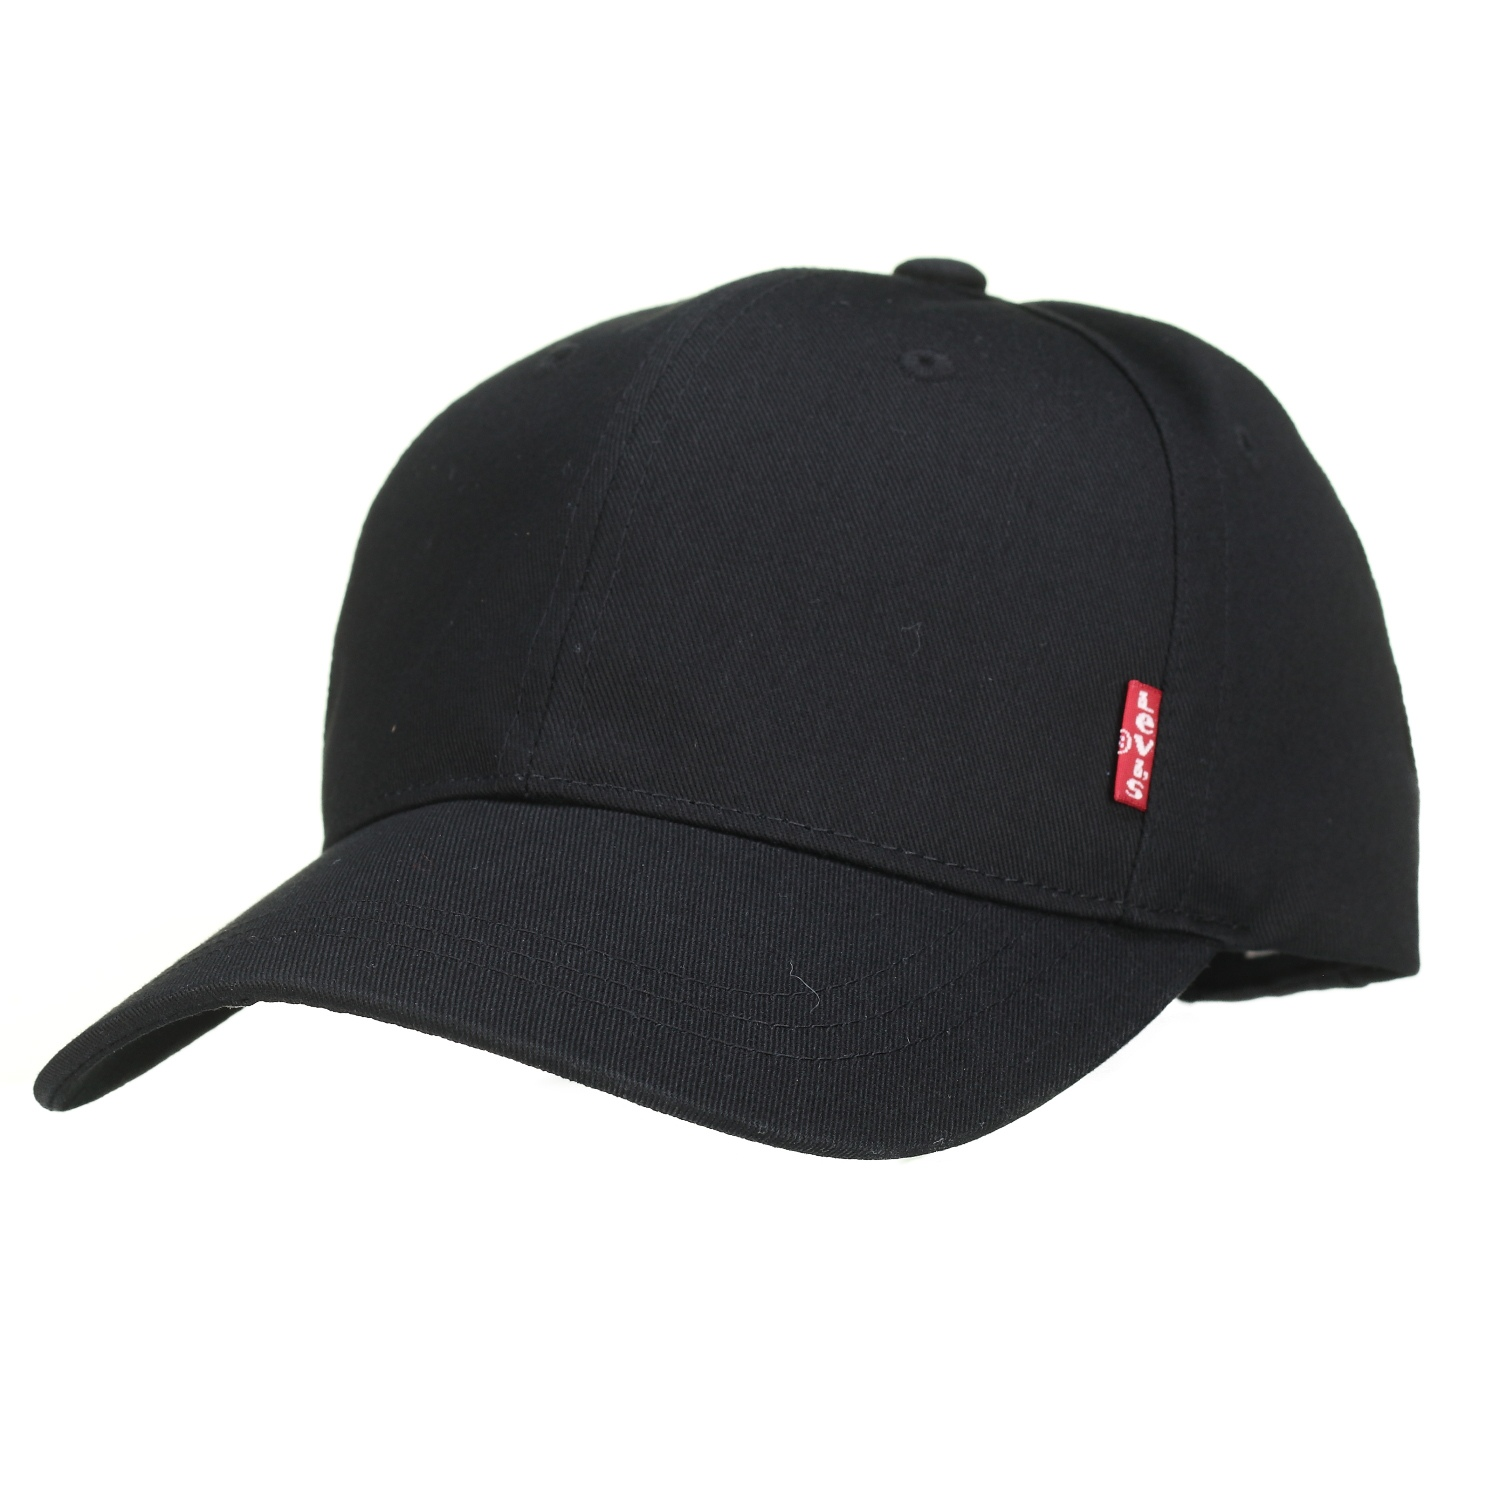 https://www.leadermode.com/184219/levis-219411-59-regular-black.jpg